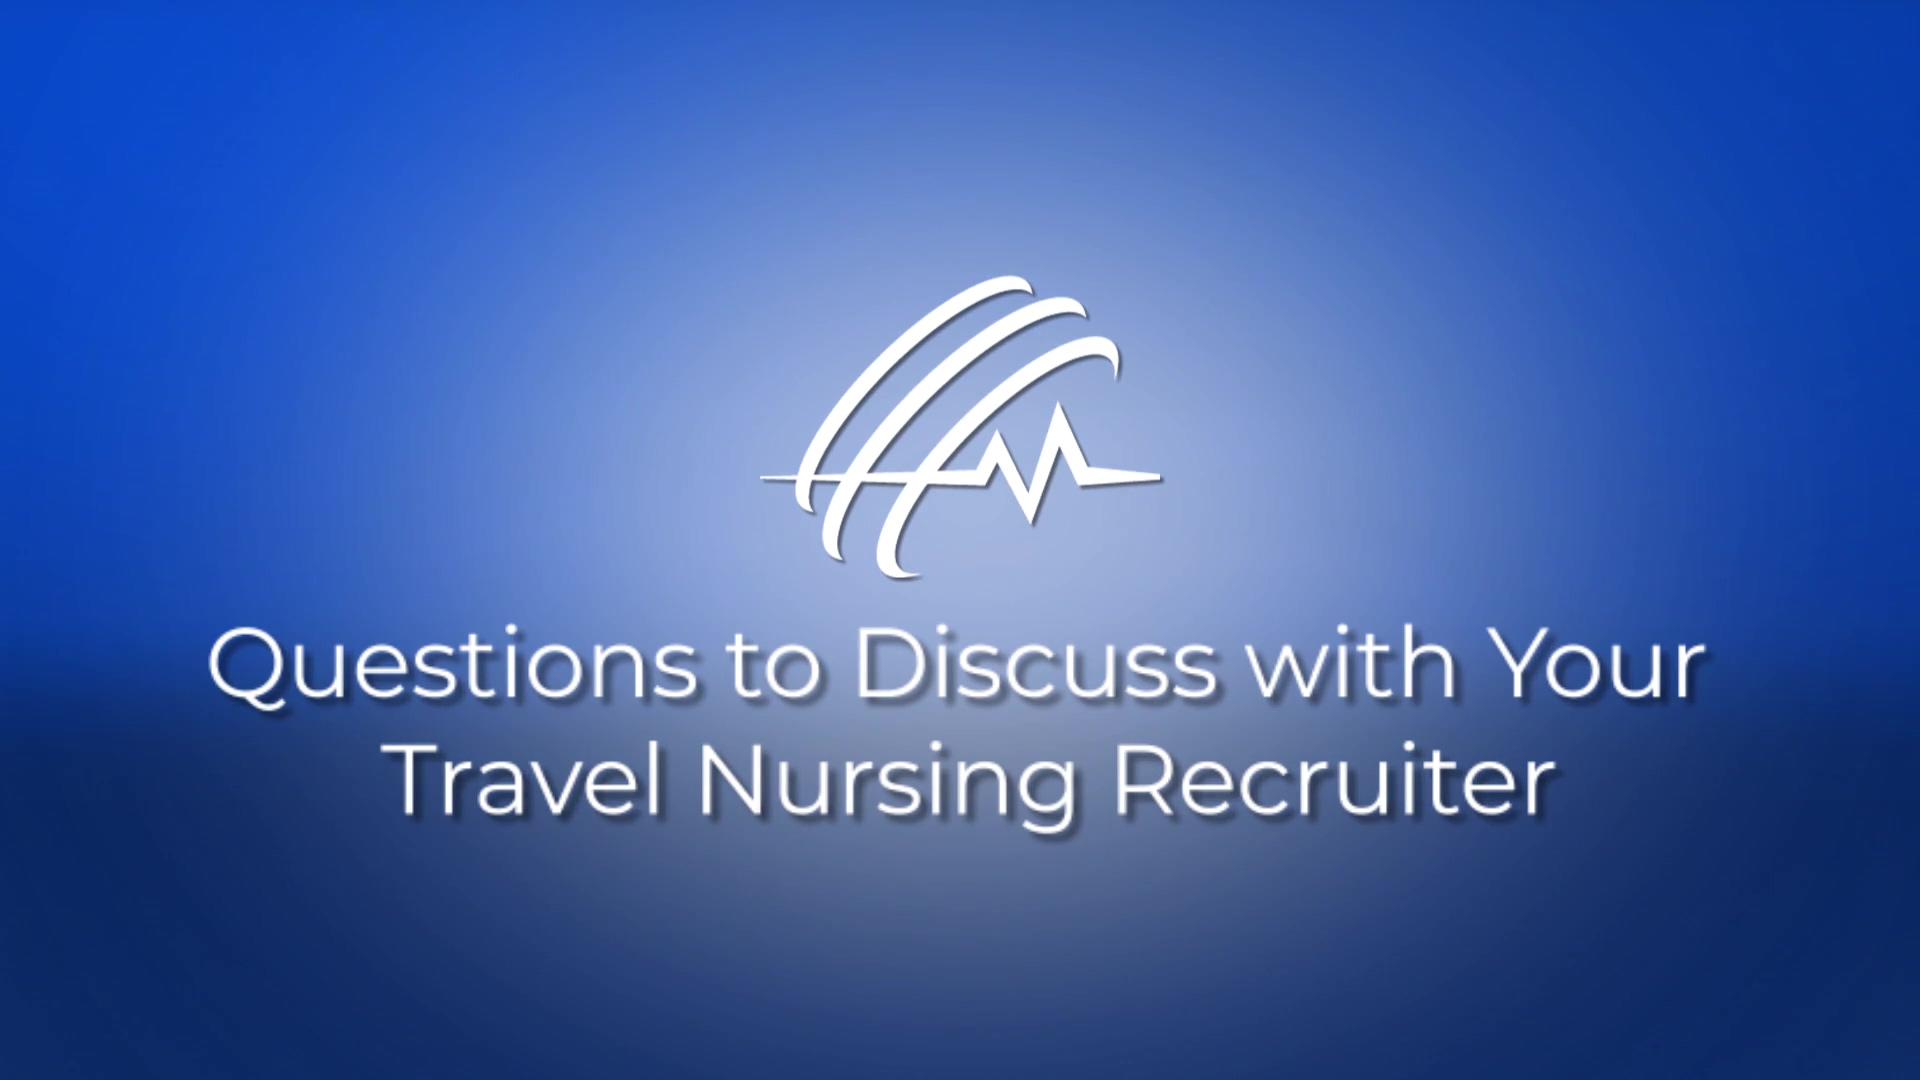 Questions to Discuss with Your Travel Nursing Recruiter - v4